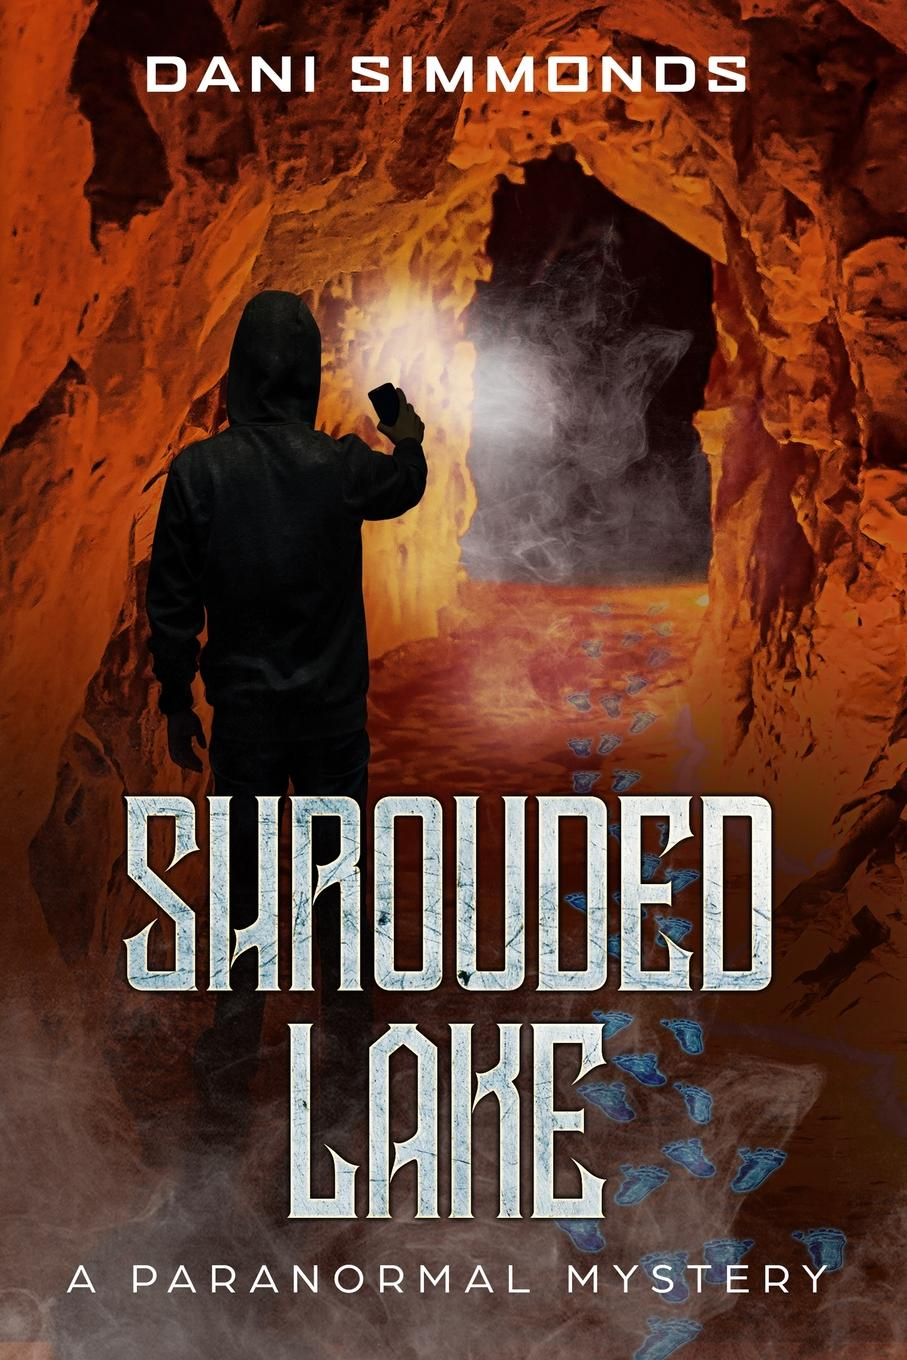 Dani Simmonds Shrouded Lake. A Paranormal Mystery catriona cotterill poetic escapes